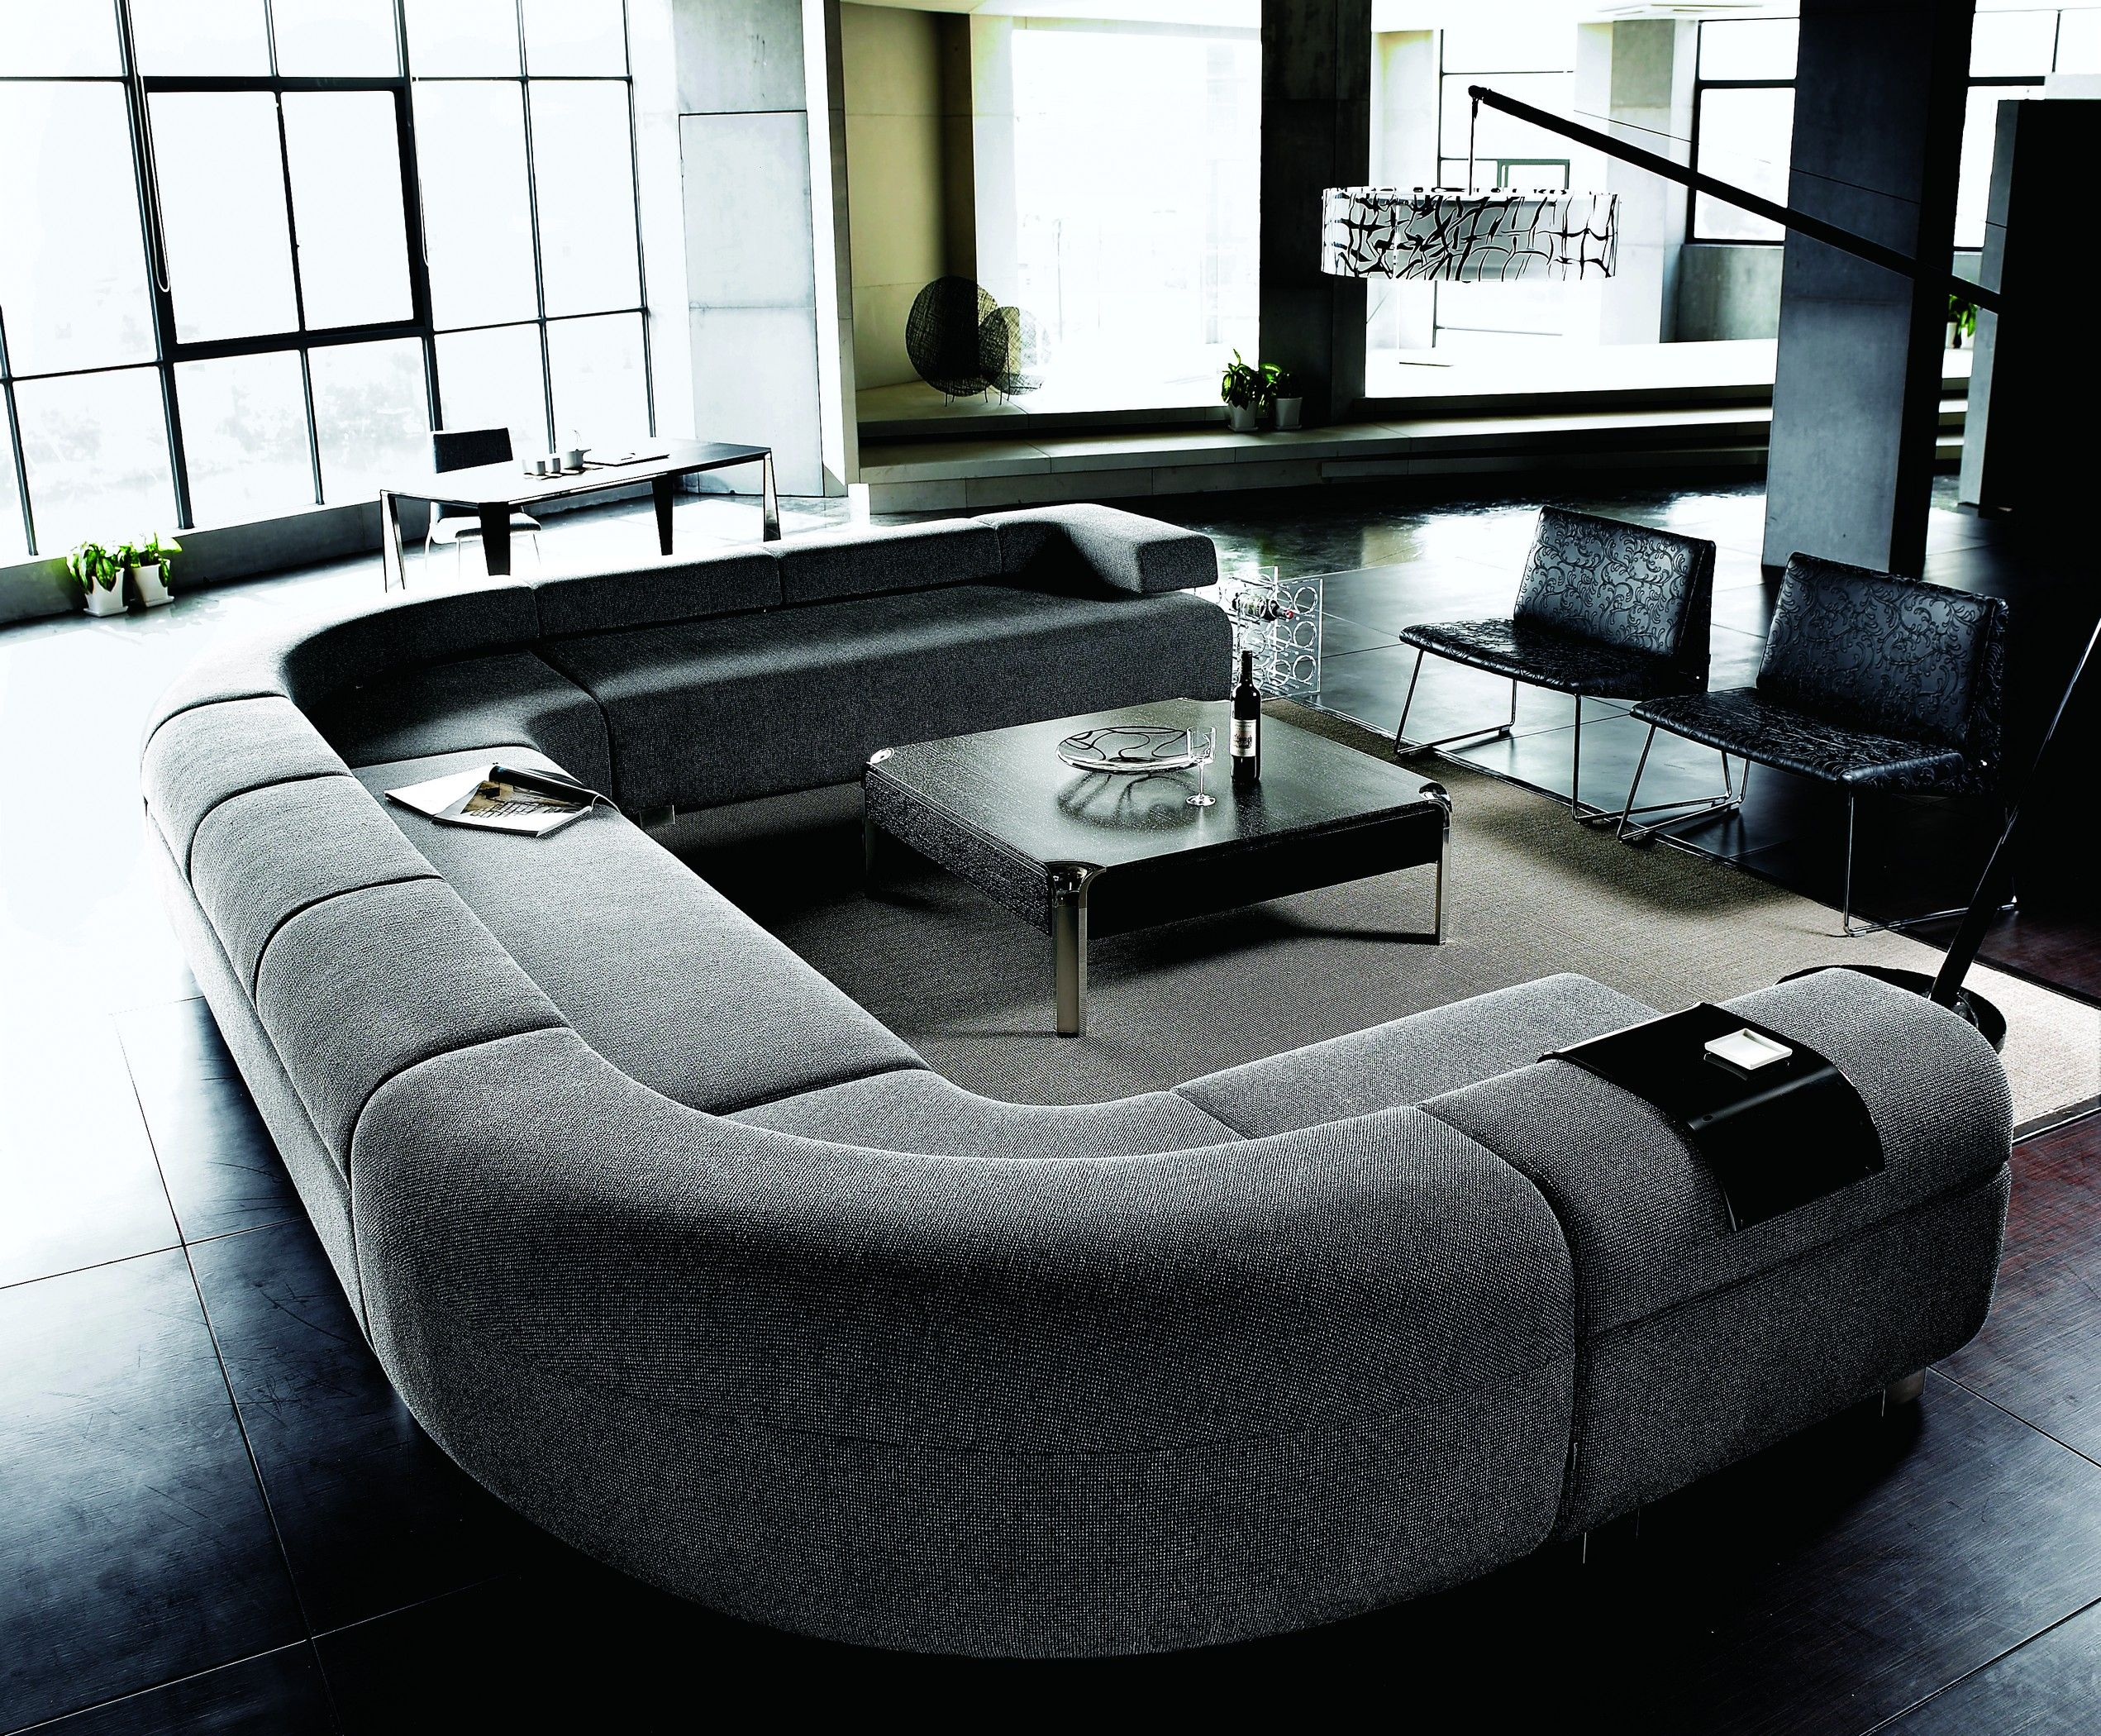 Limitless Europe Bv Product G Sofa Contemporary Home Furniture Modern Sofa Furniture